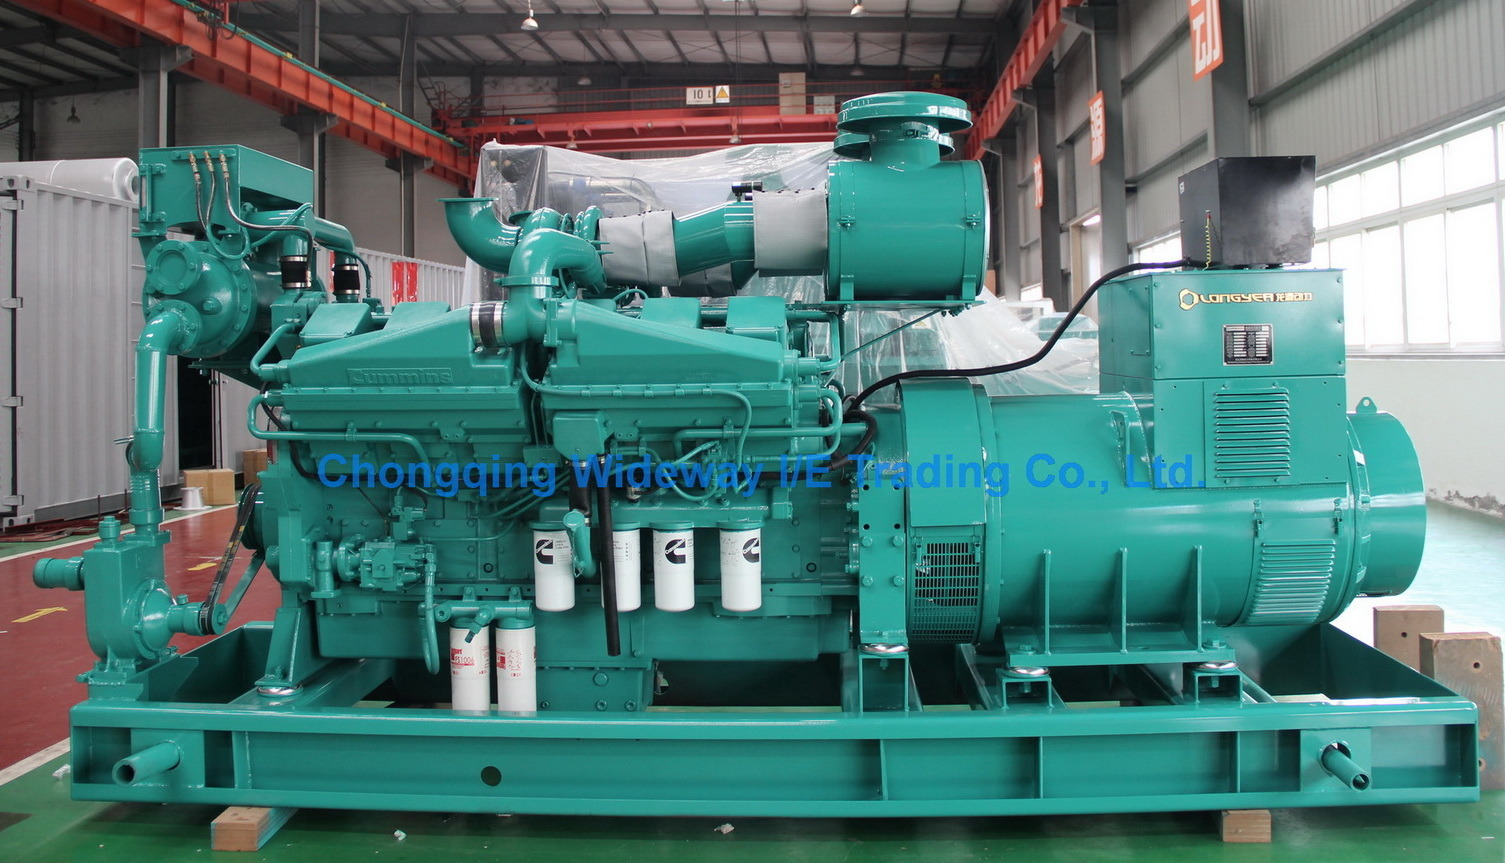 28kVA-2500kVA Cummins Engine Diesel Generator Set